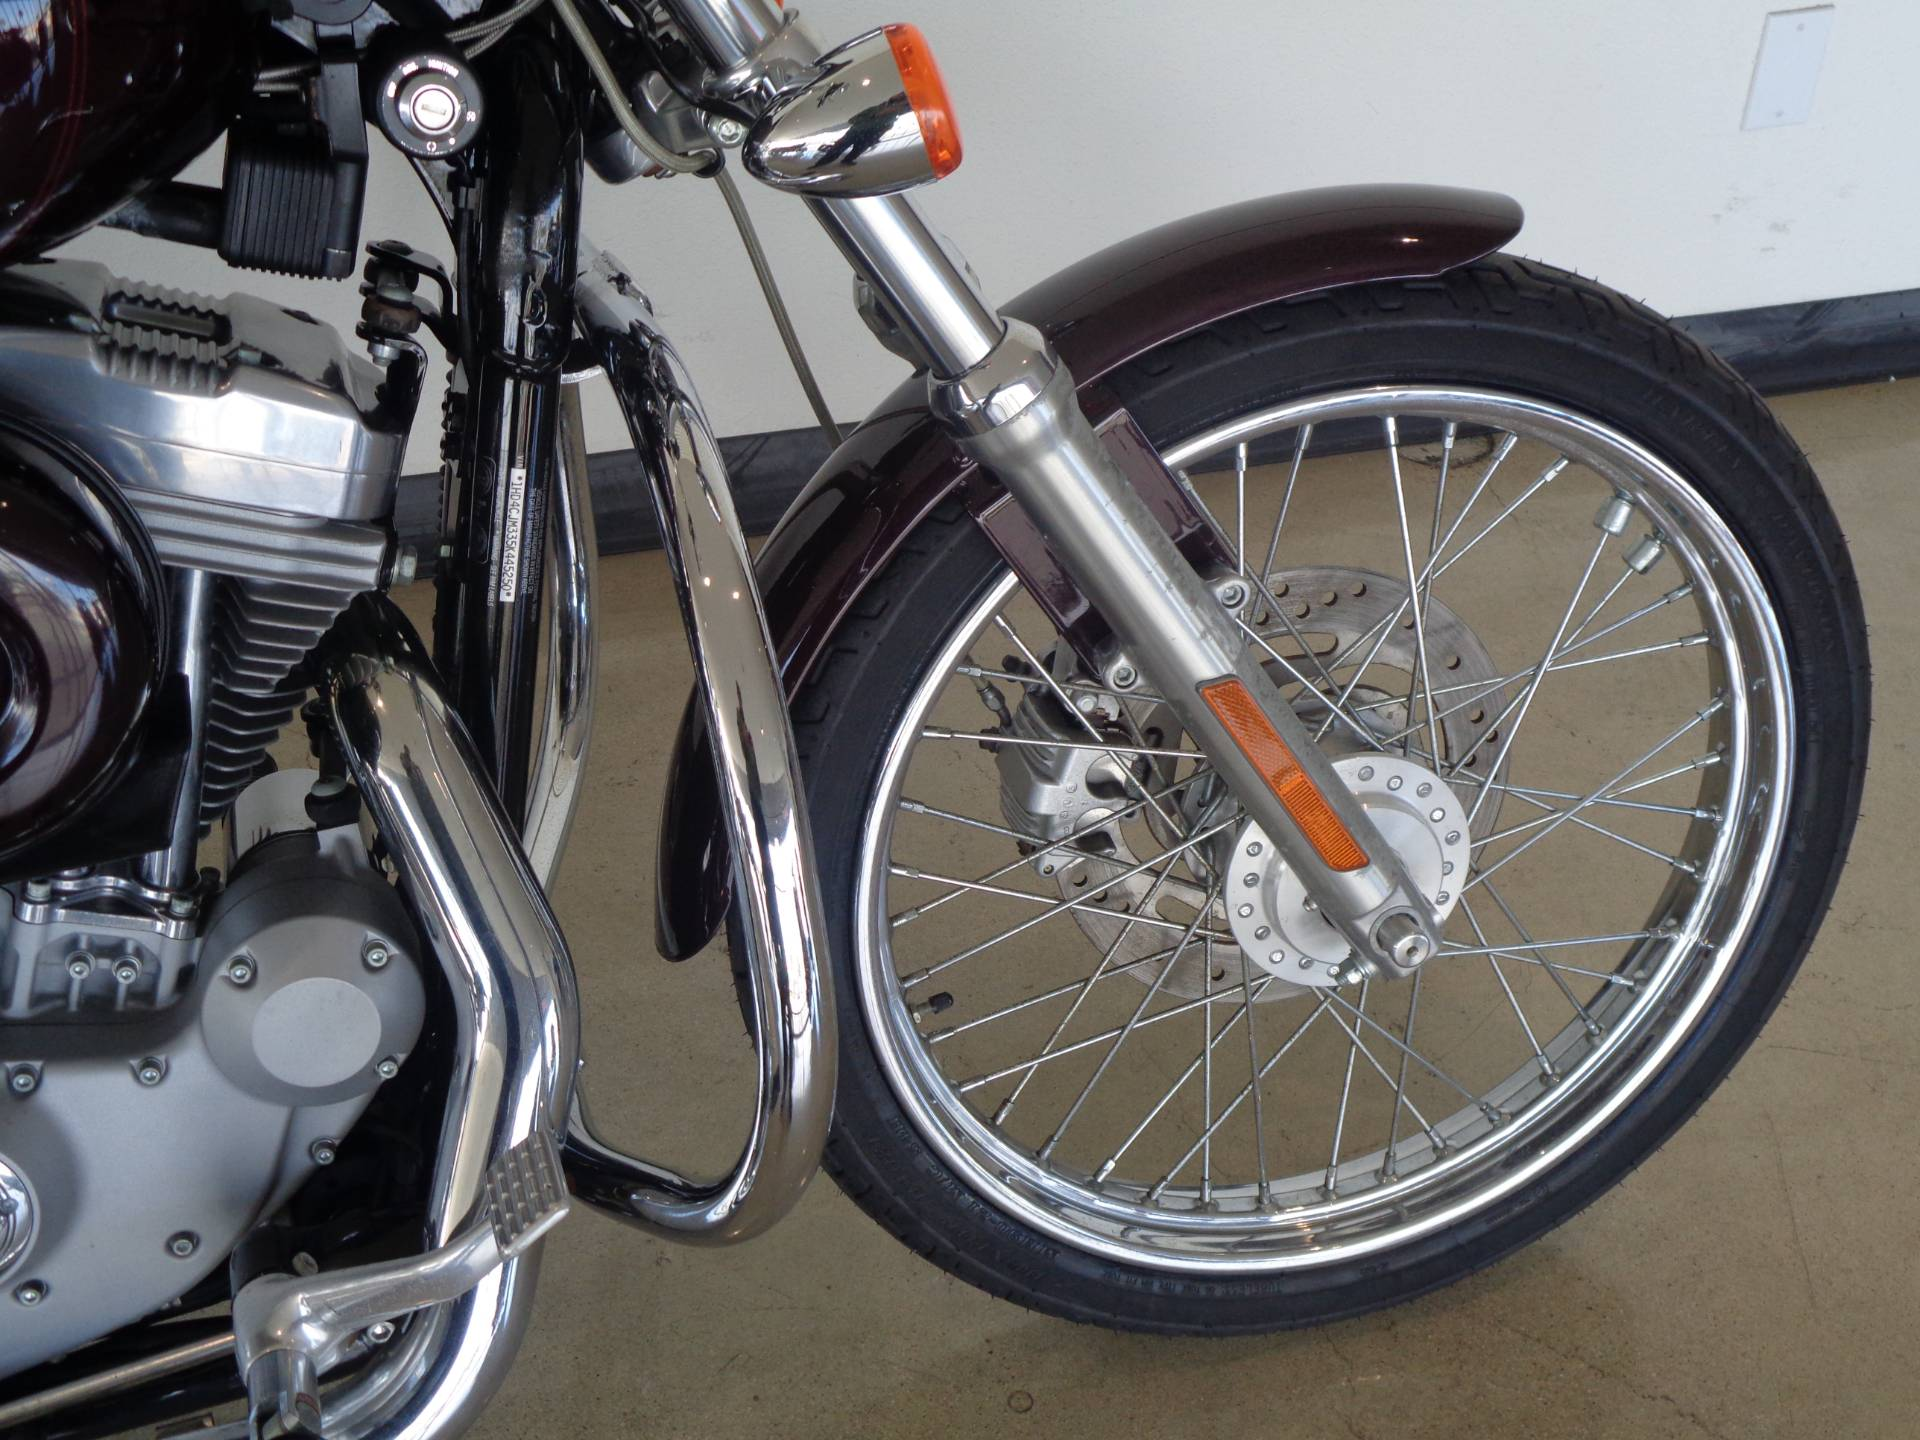 2005 Harley-Davidson Sportster® XL 883C in Chula Vista, California - Photo 7